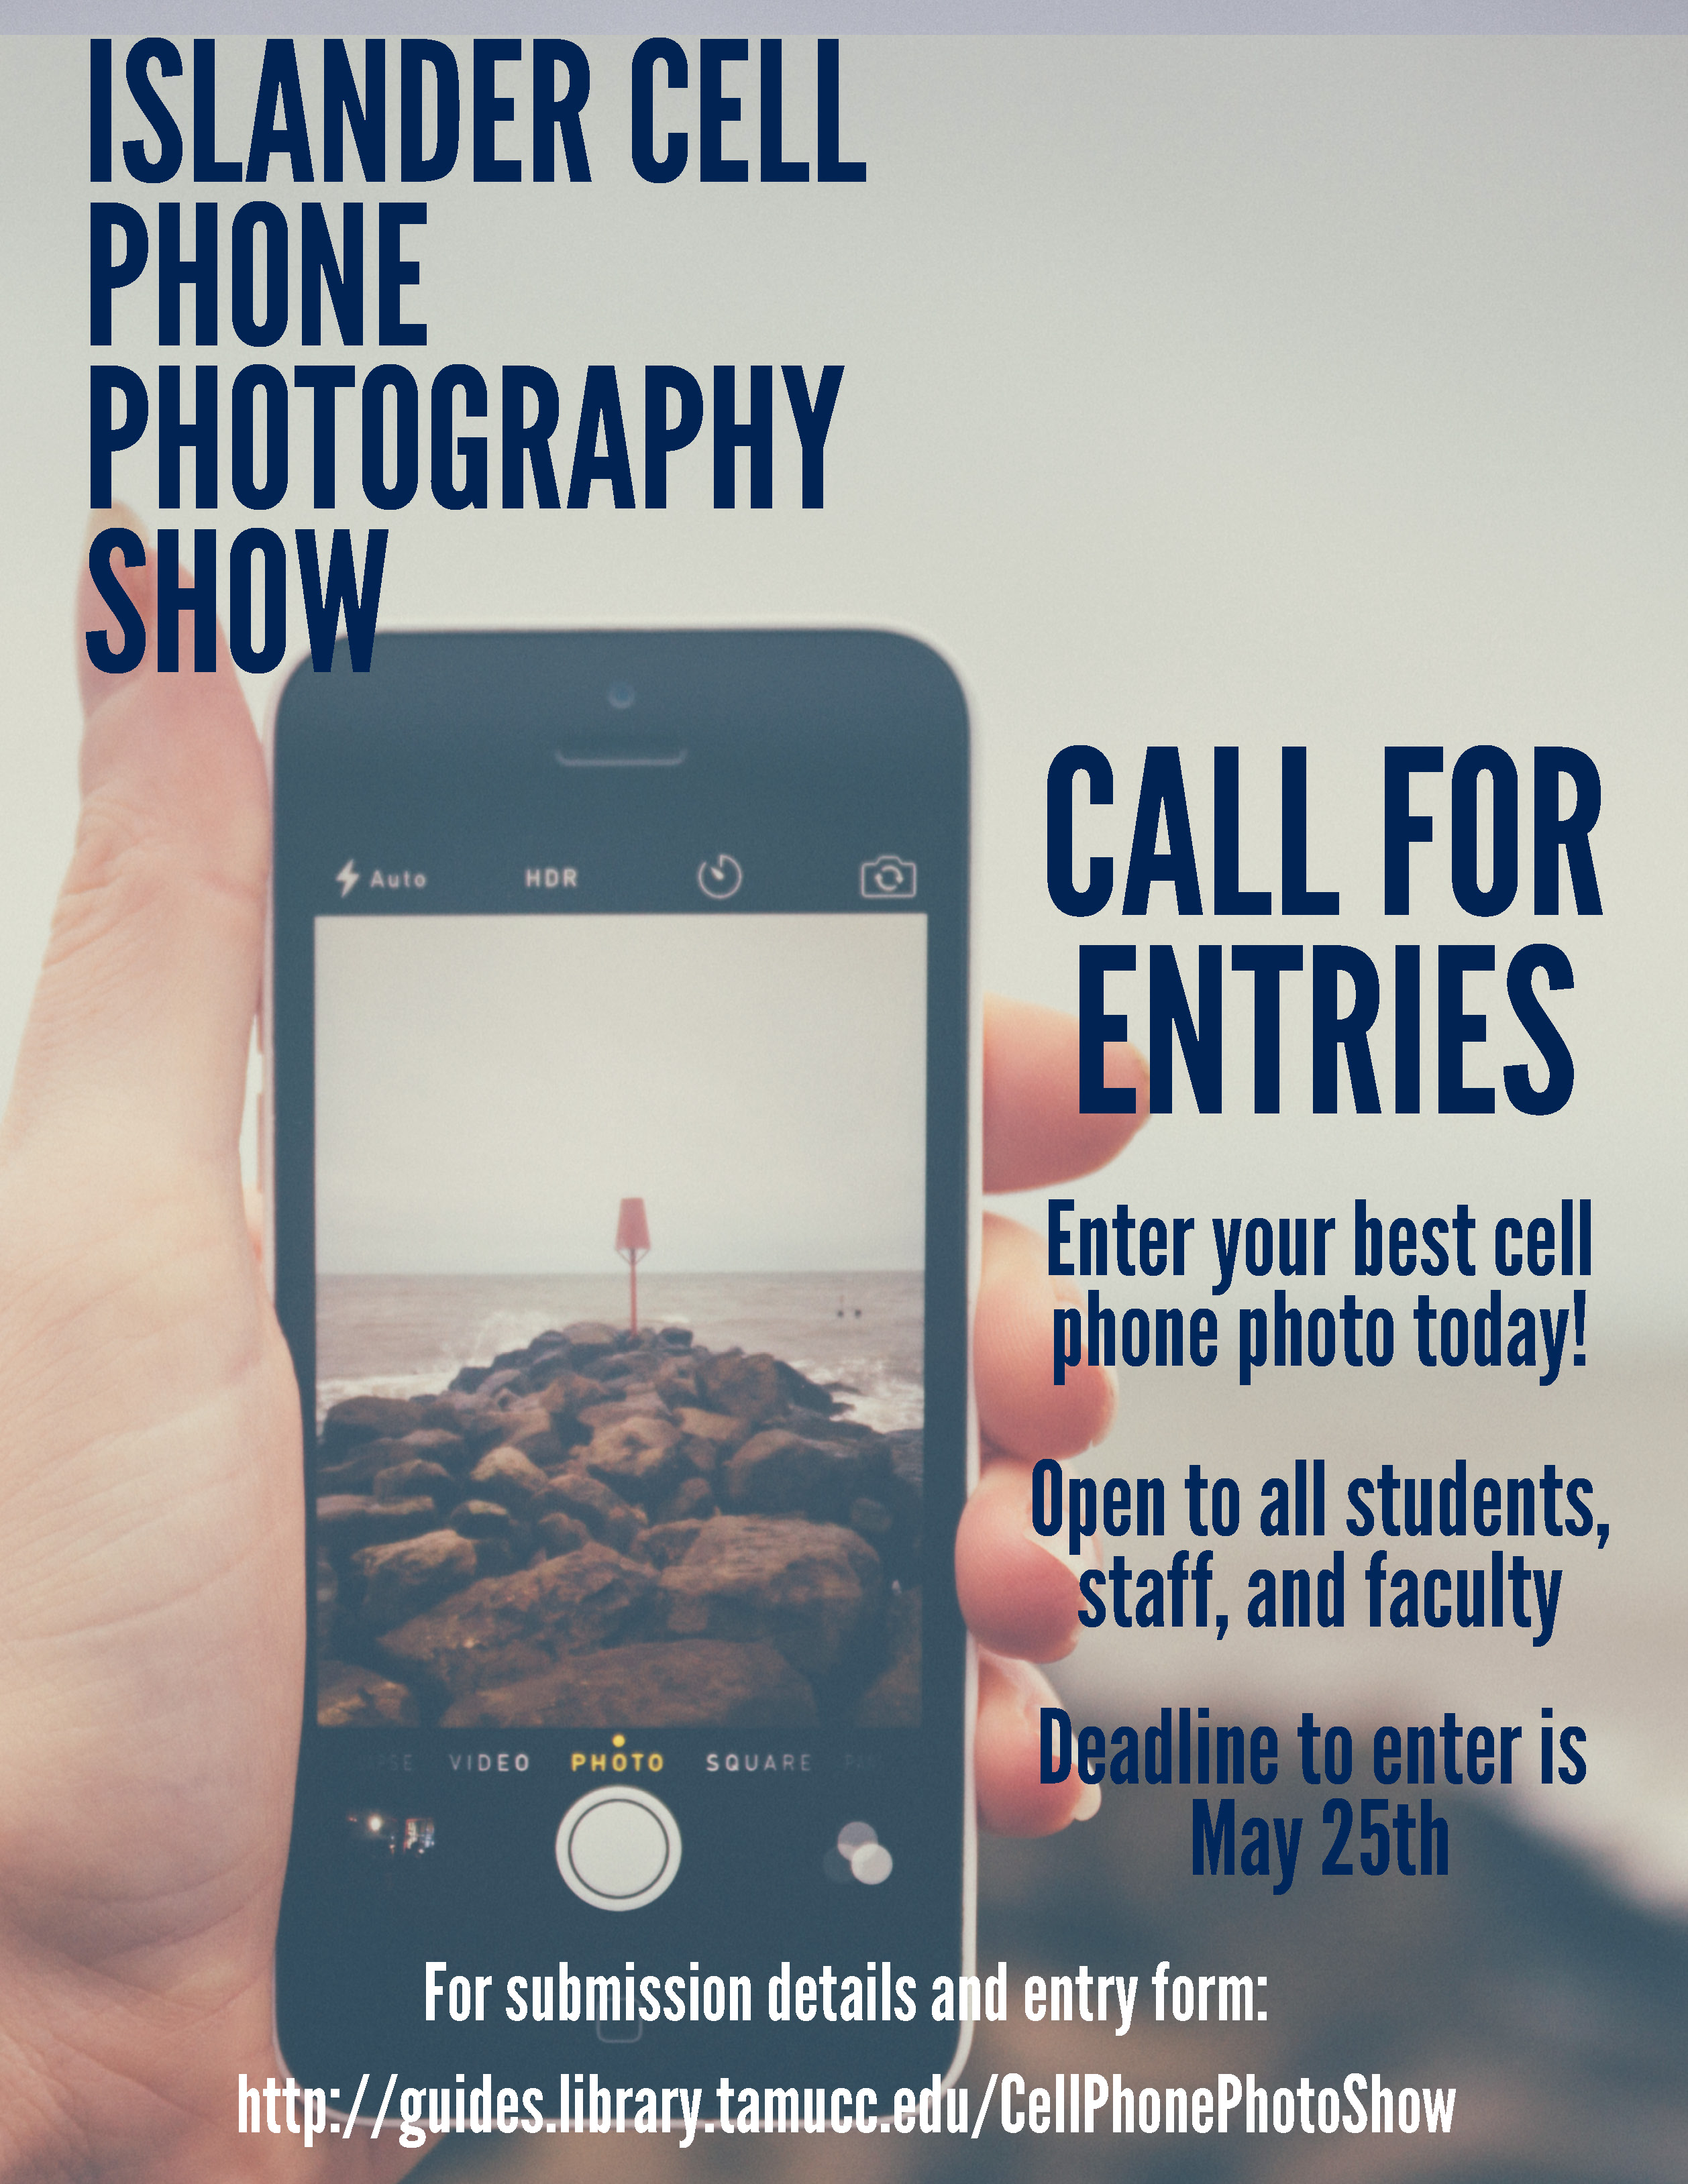 Cell Phone Photography Show - Call for Submissions Through May 25th